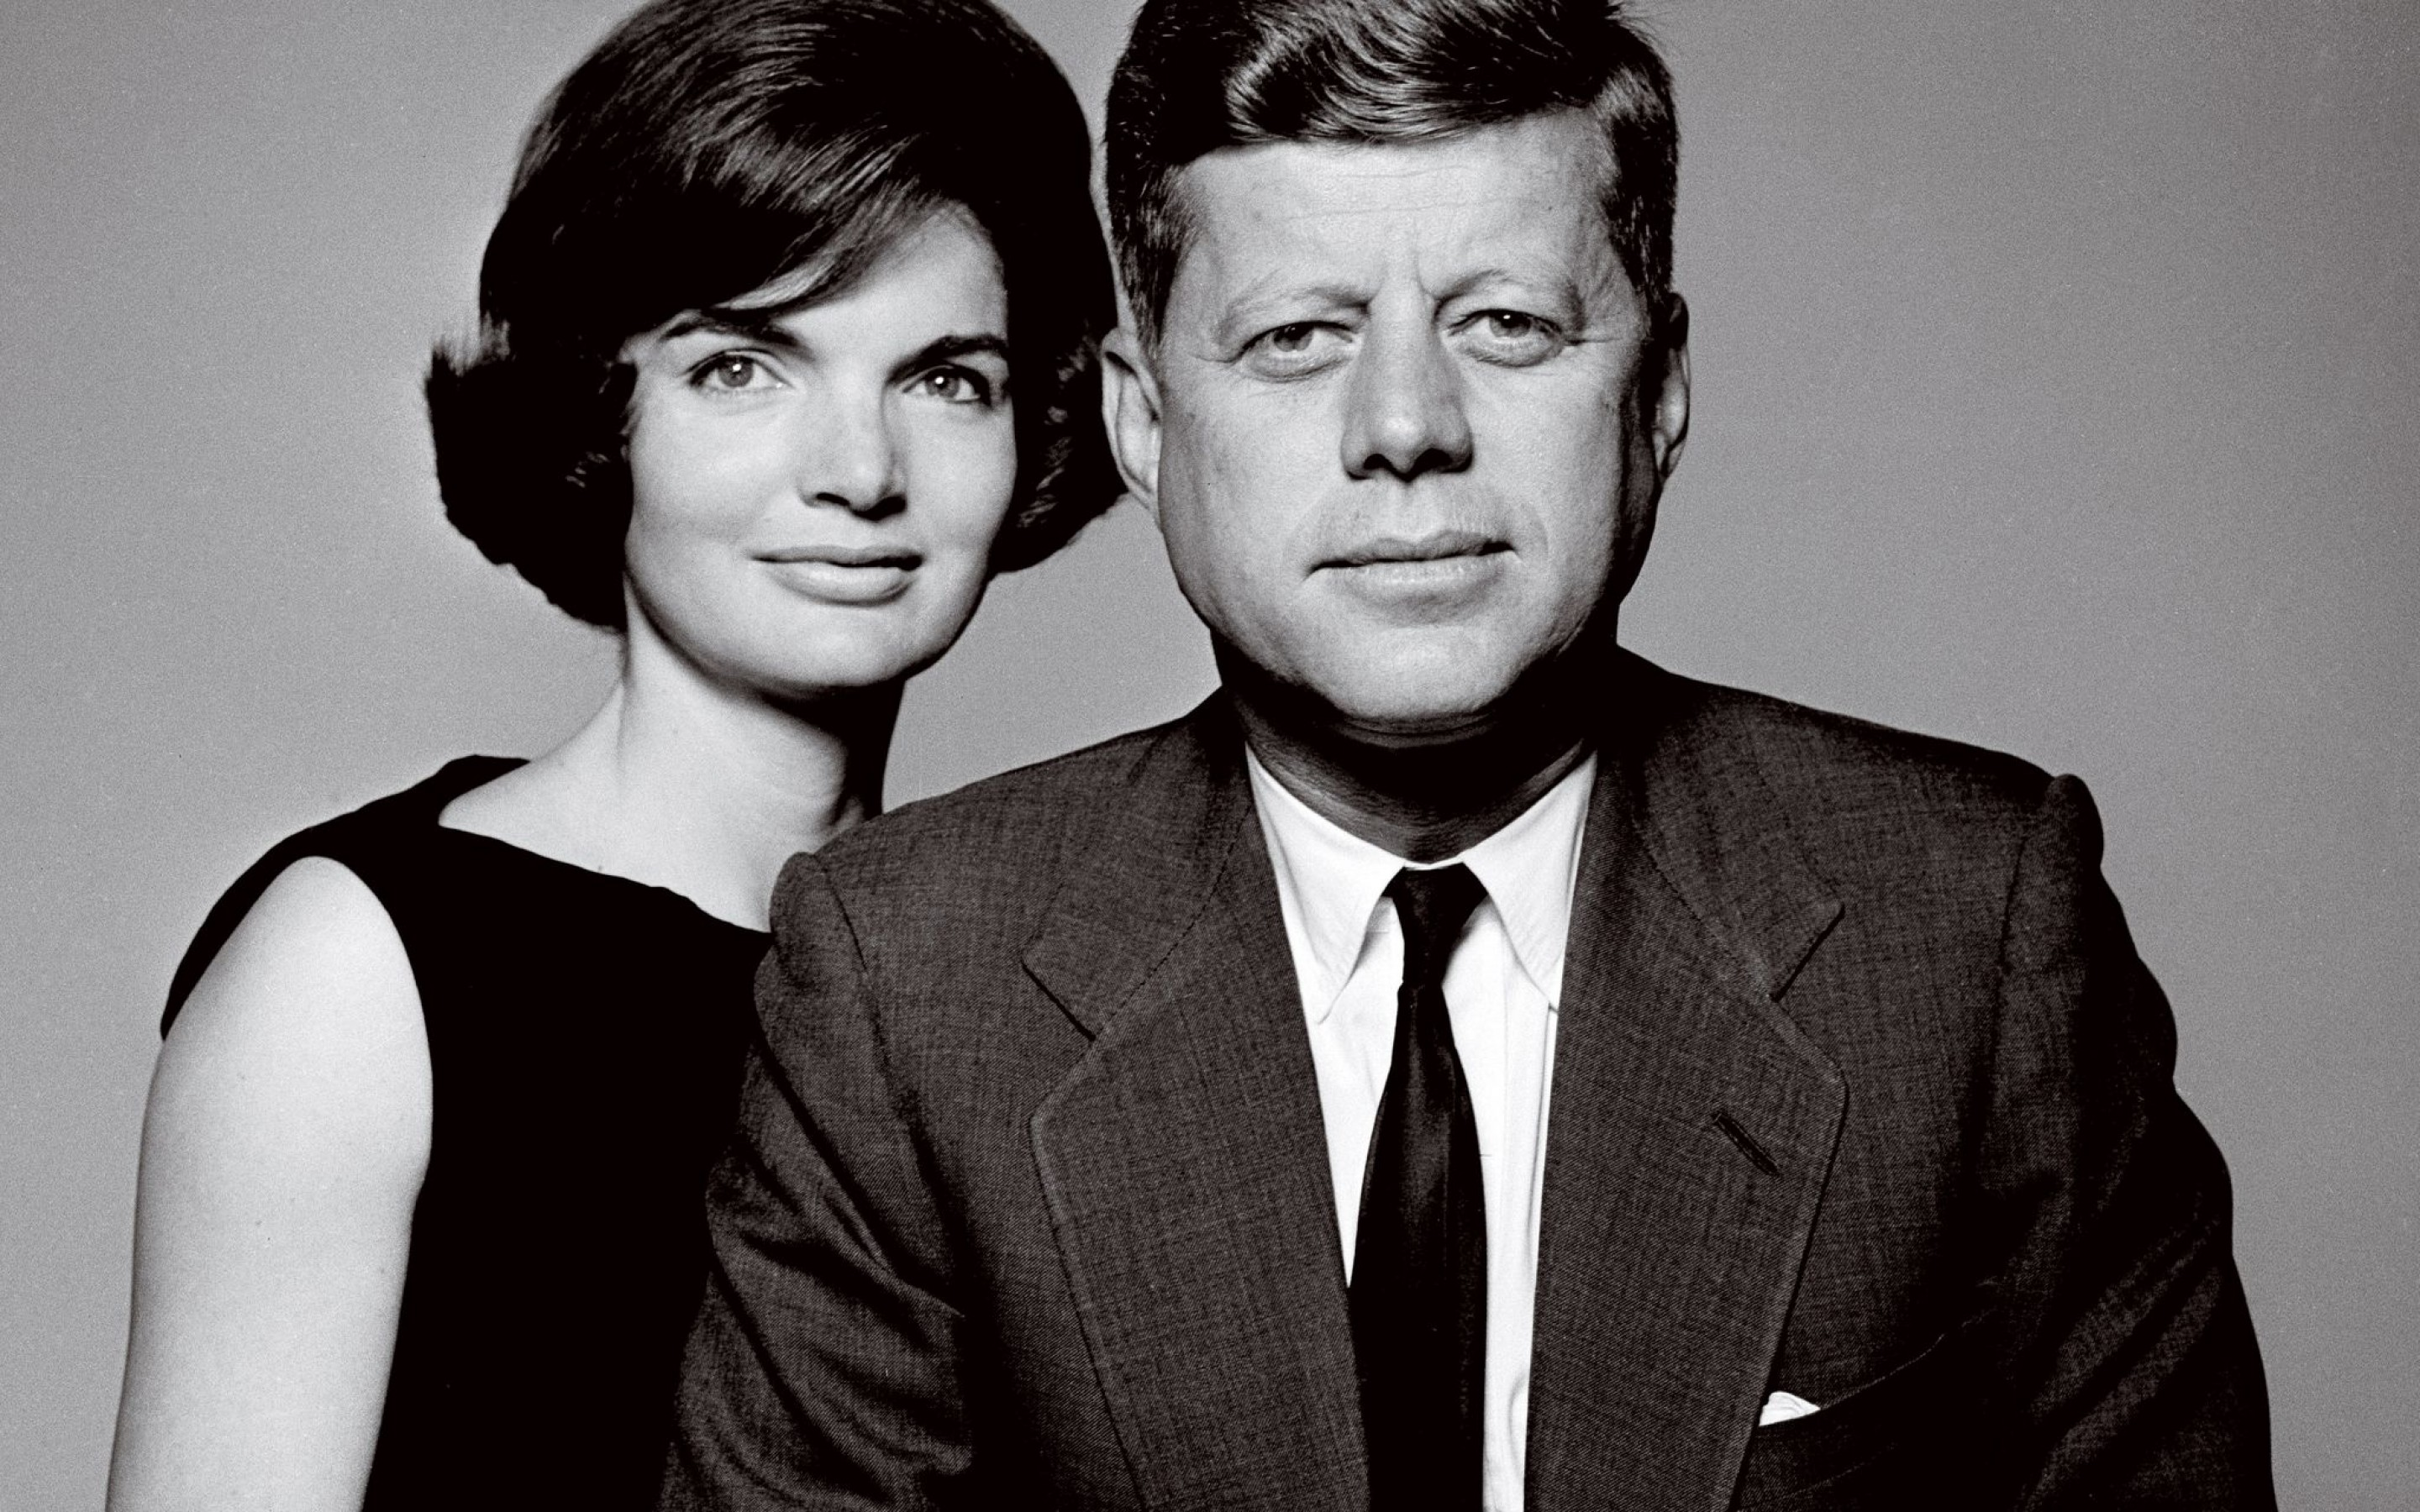 Резултат с изображение за john kennedy and jackie kennedy